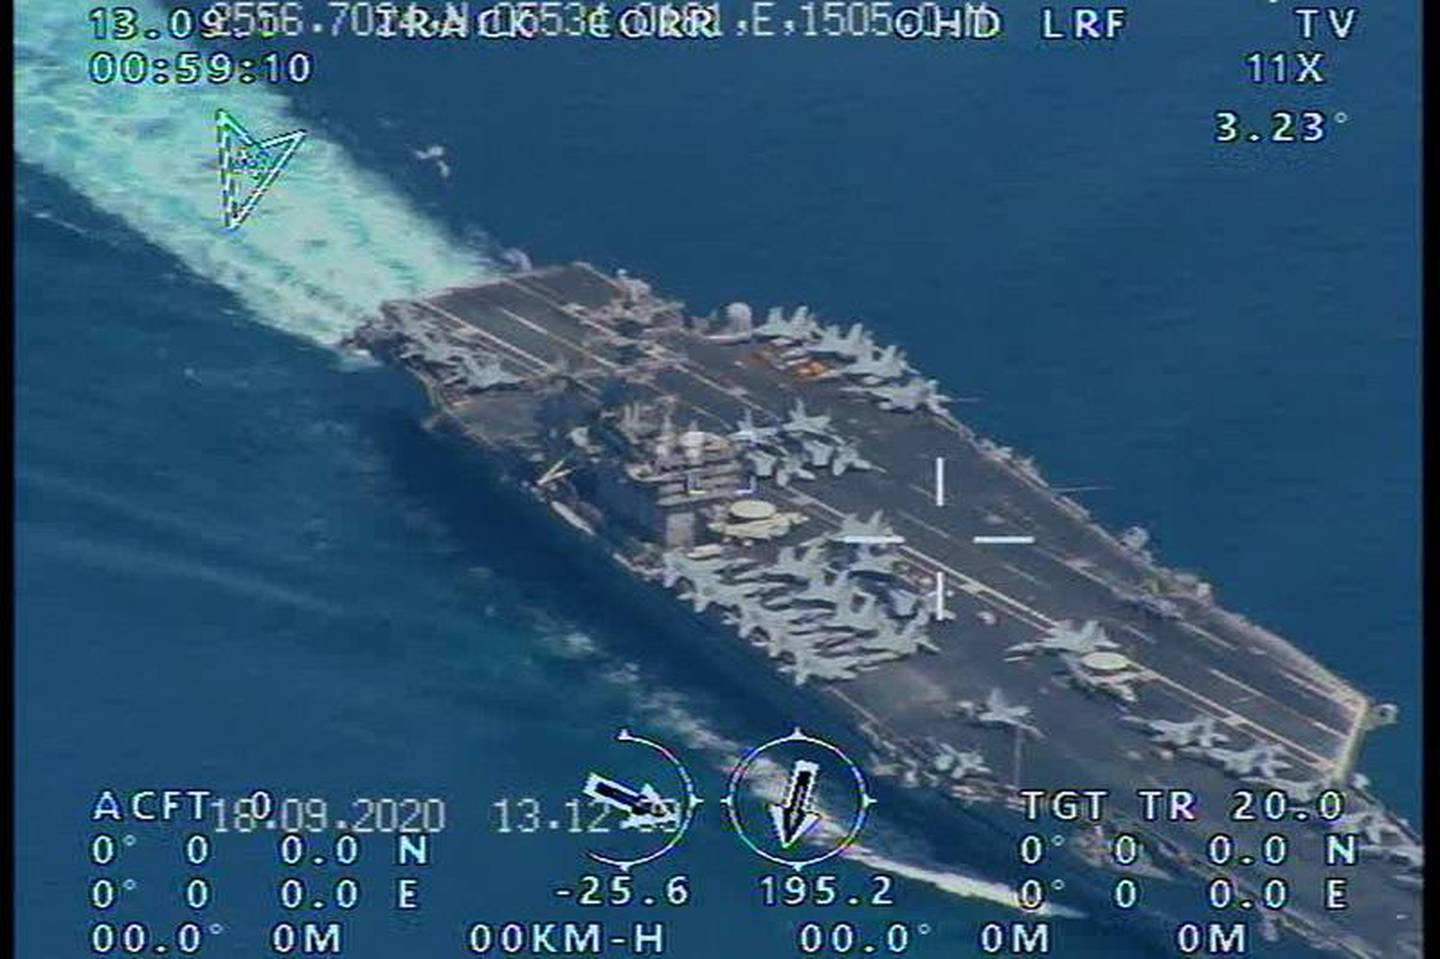 epa08690749 A handout picture released by the official website of Iranian Revolutionary Guard (IRGC) on 23 September 2020, reportedly shows the USS Nimitz Aircraft carrier prior to entering the Strait of Hormuz and Persian Gulf, which was taken by an Iranian IRGC drone. Media reported that Iranian IRGC has managed to fly a surveillance drone over the USS Nimitz aircraft carrier which last week transited from the Strait of Hormuz.  EPA/HANDOUT  HANDOUT EDITORIAL USE ONLY/NO SALES